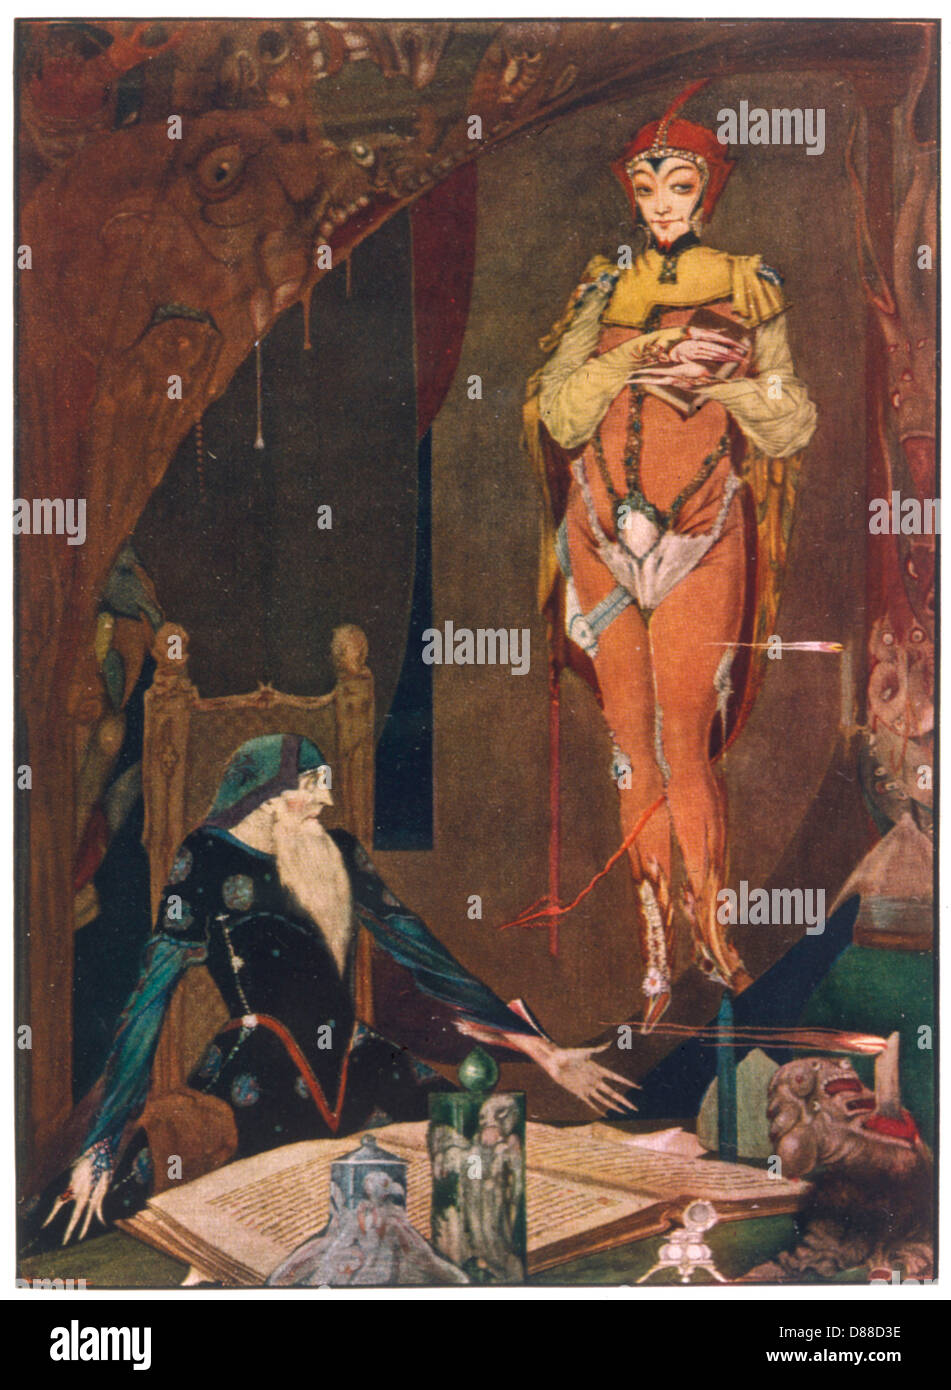 Faust And Mephistopheles - Stock Image